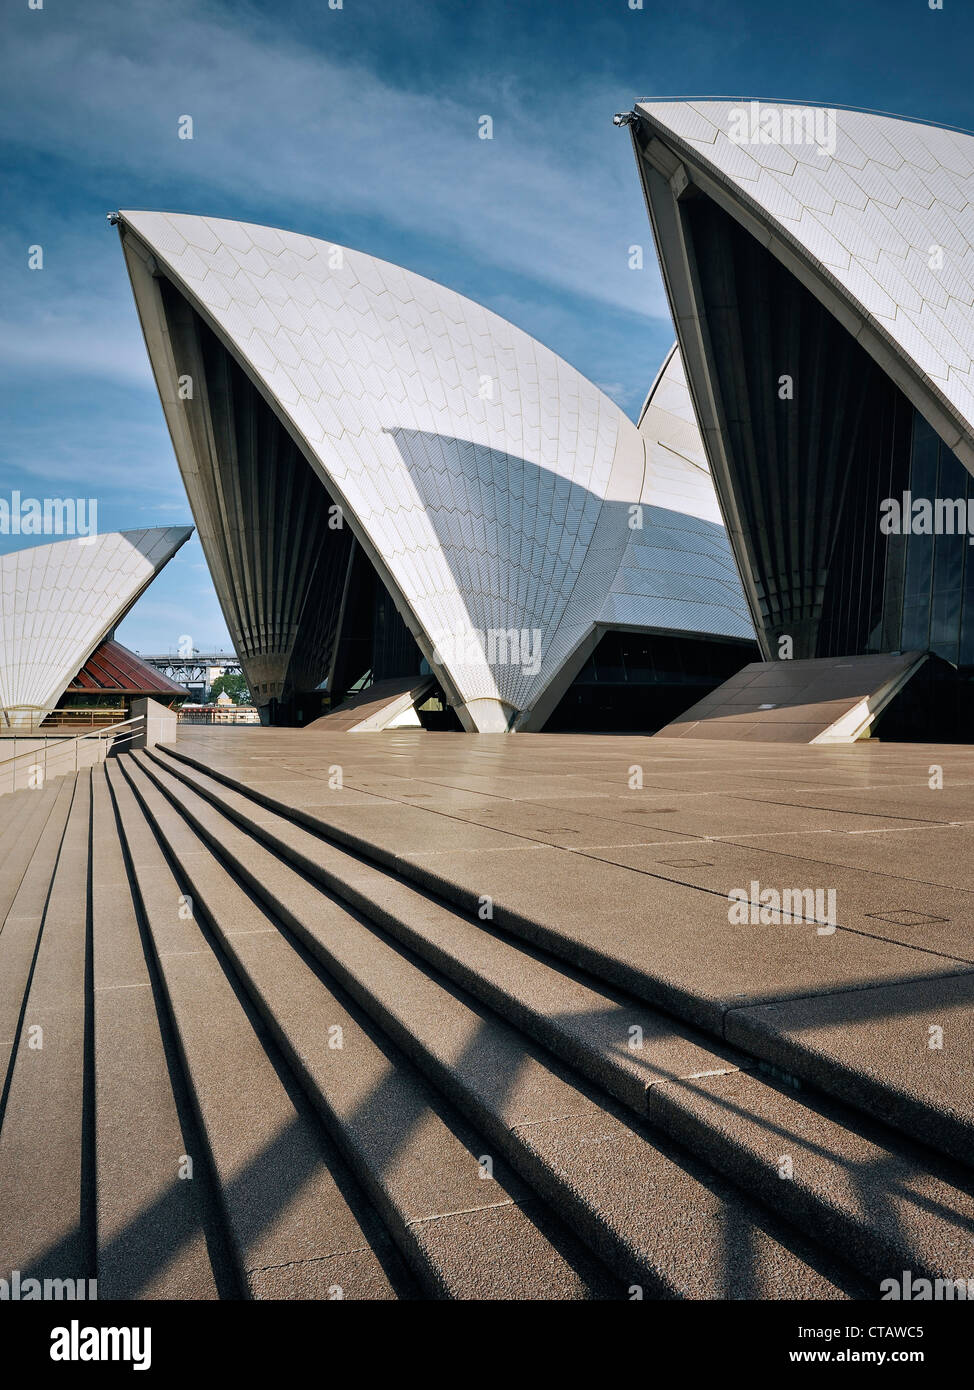 Archway Sydney Opera House, architect Jorn Utzon, UNSCEO world herritage site, New South Wales, Australia - Stock Image